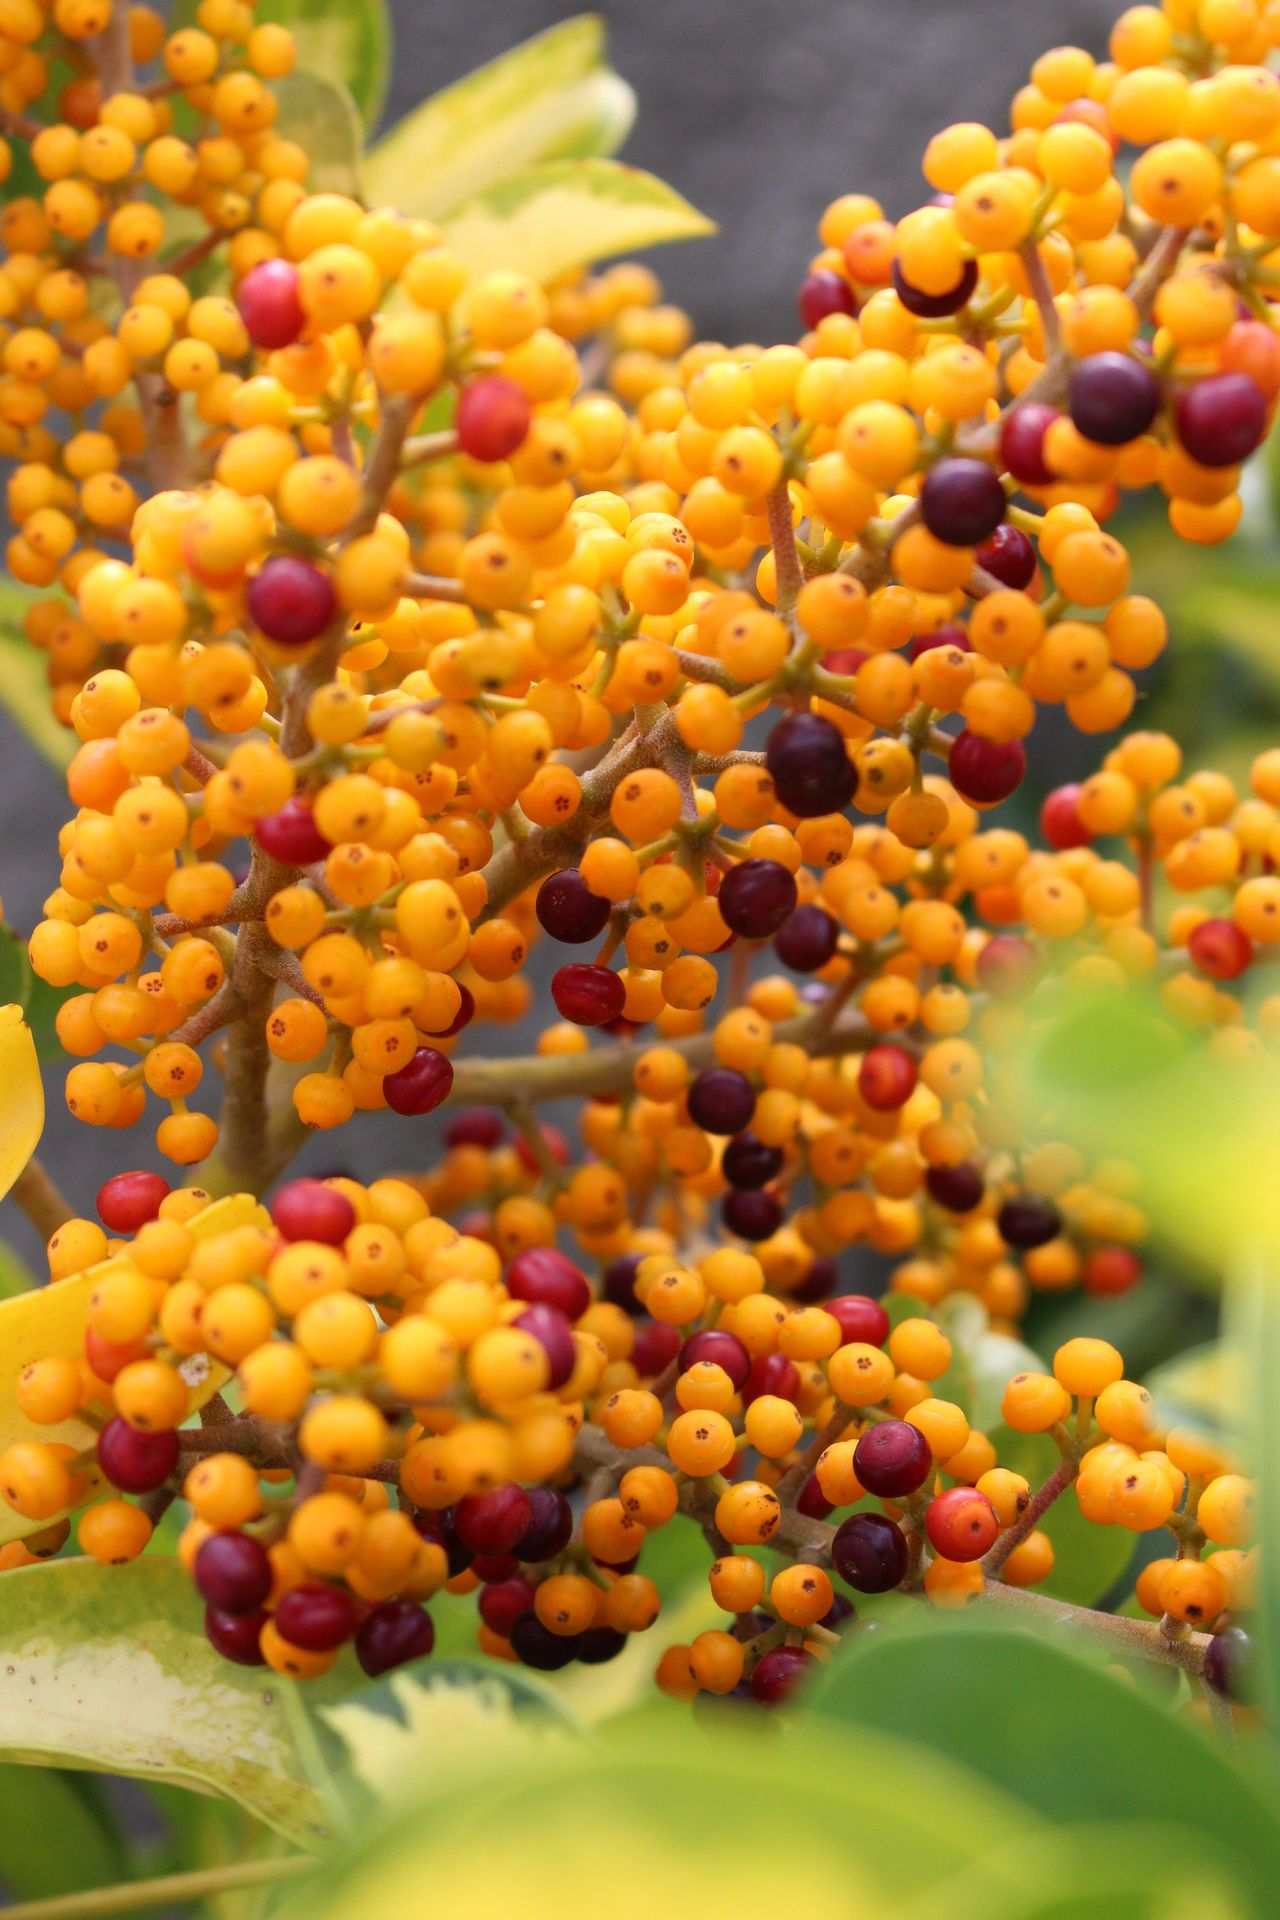 Yellow ish Growth Food And Drink Fruit Food No People Outdoors Nature Day Close-up Freshness Berries Berries Collection